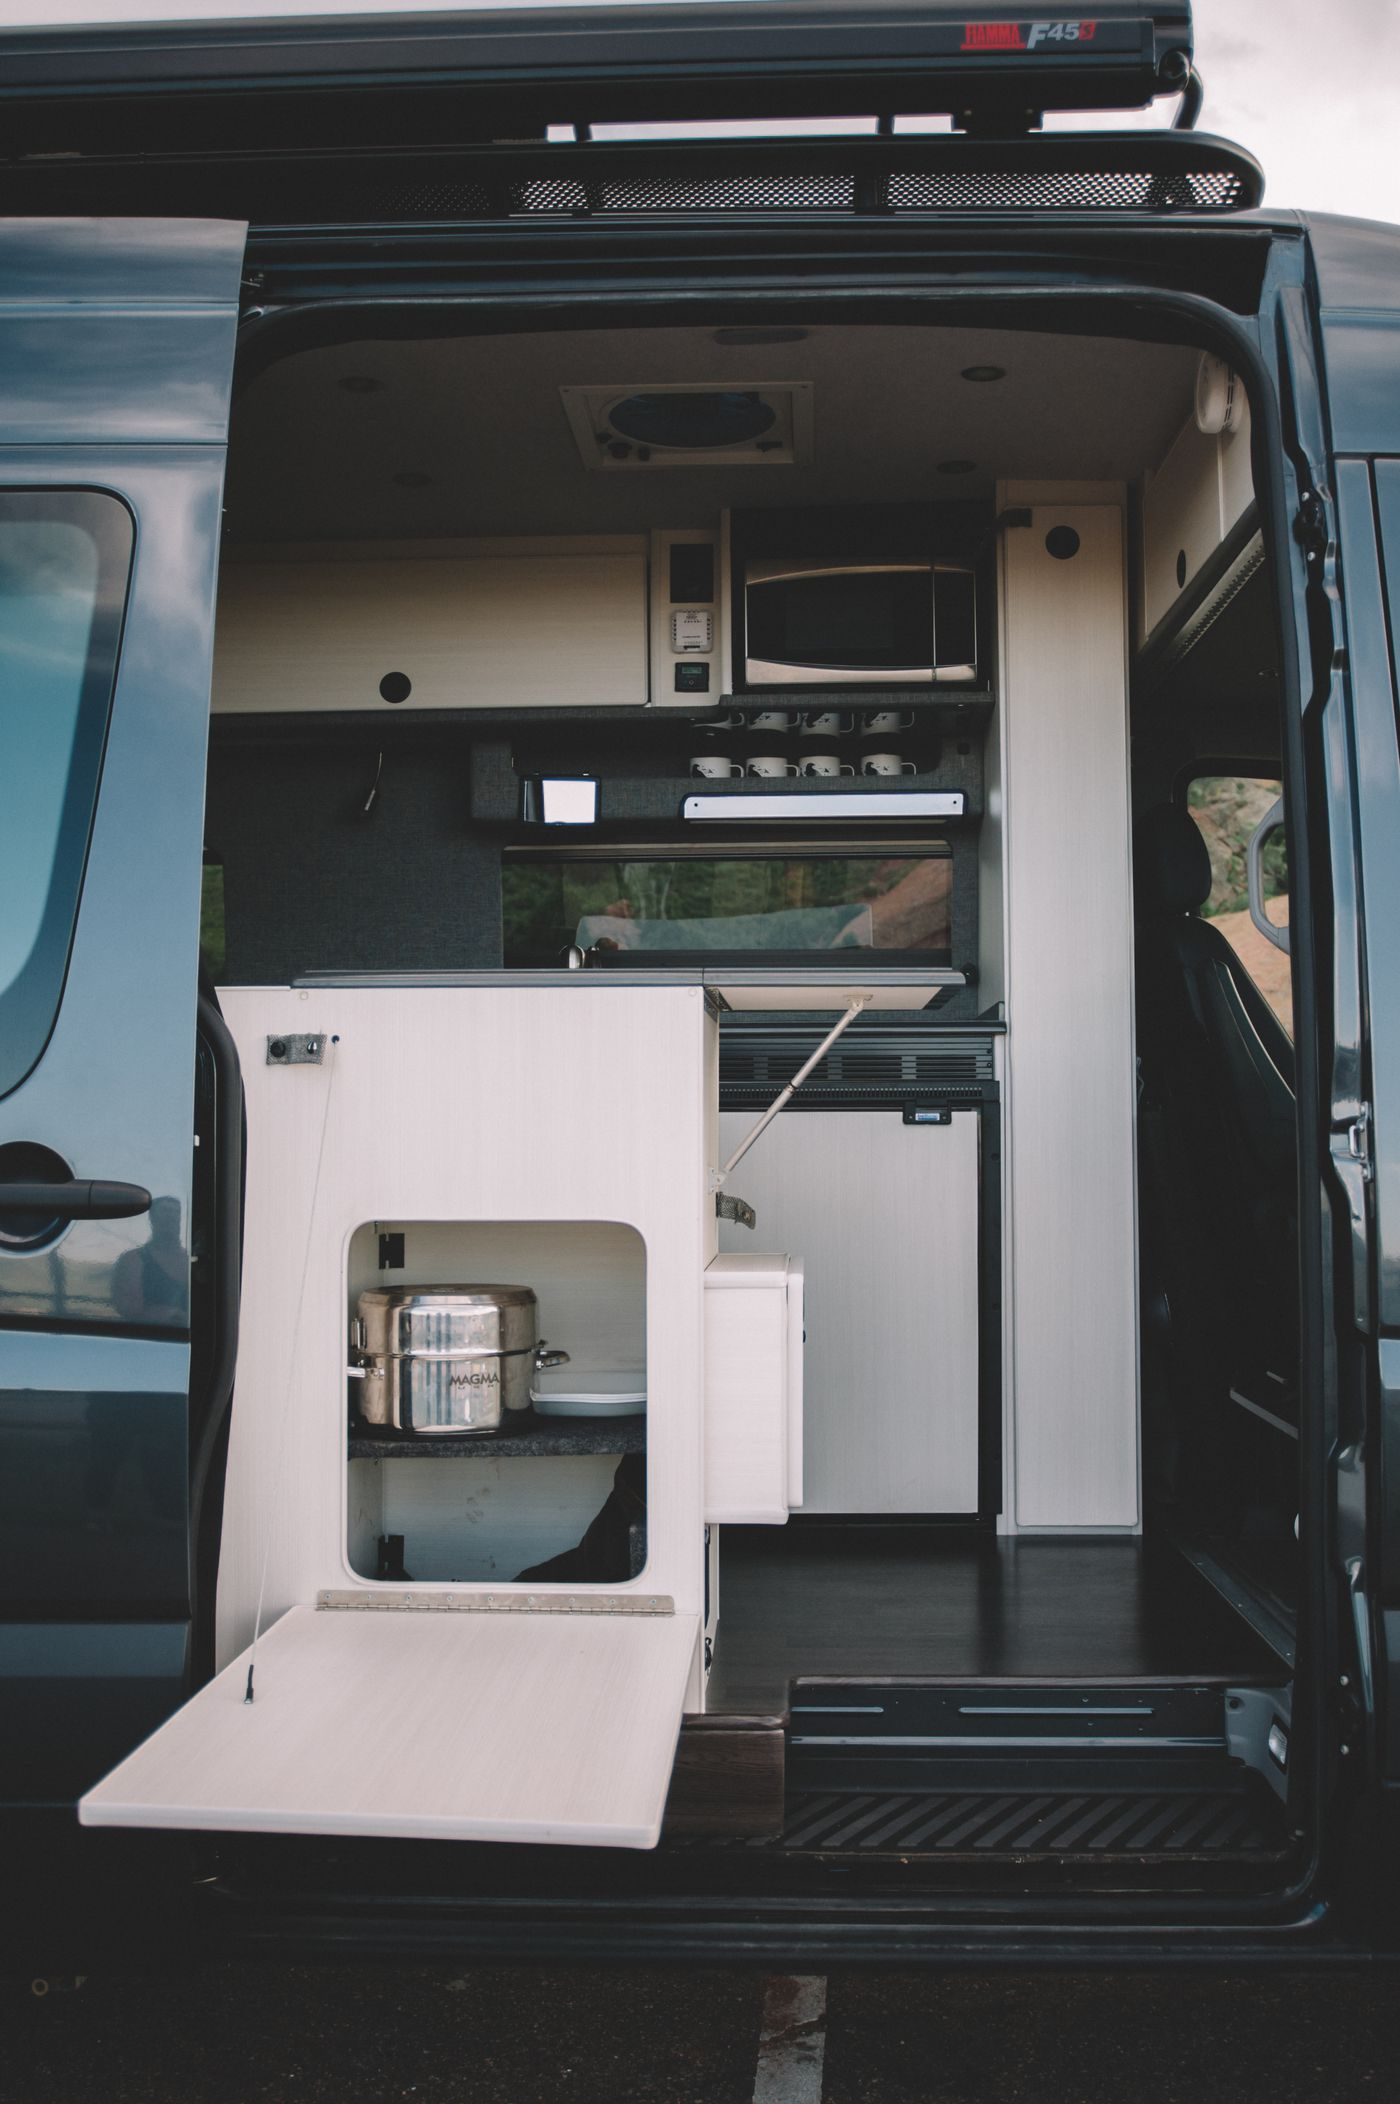 Storage ideas: organization tips to keep your RV camper tidy